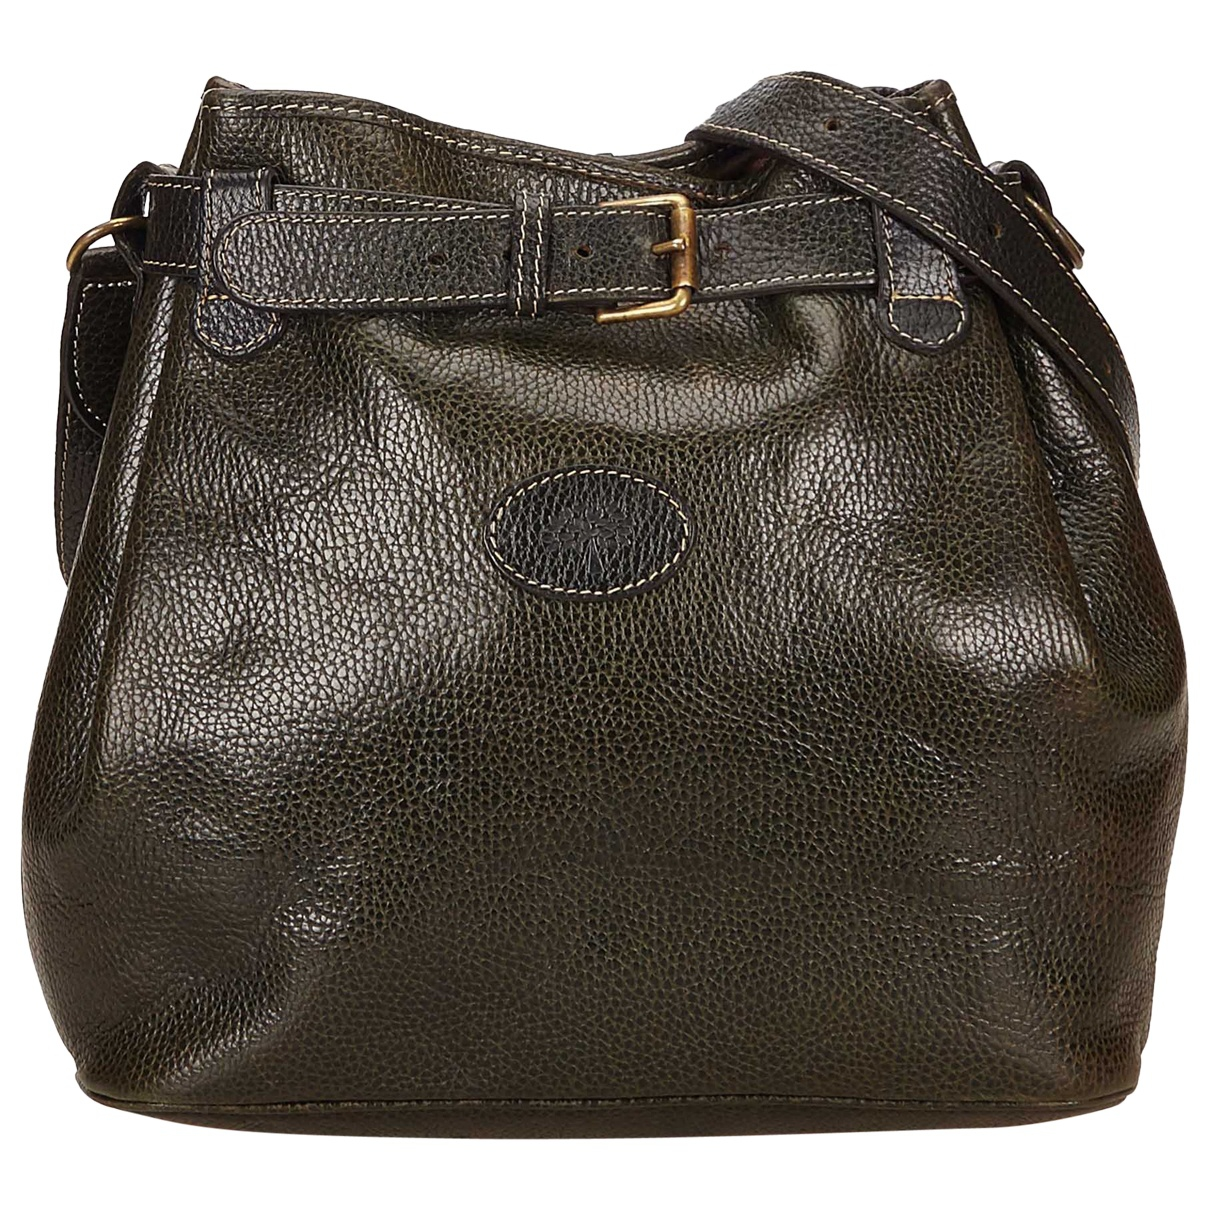 Mulberry \N Green Leather handbag for Women \N